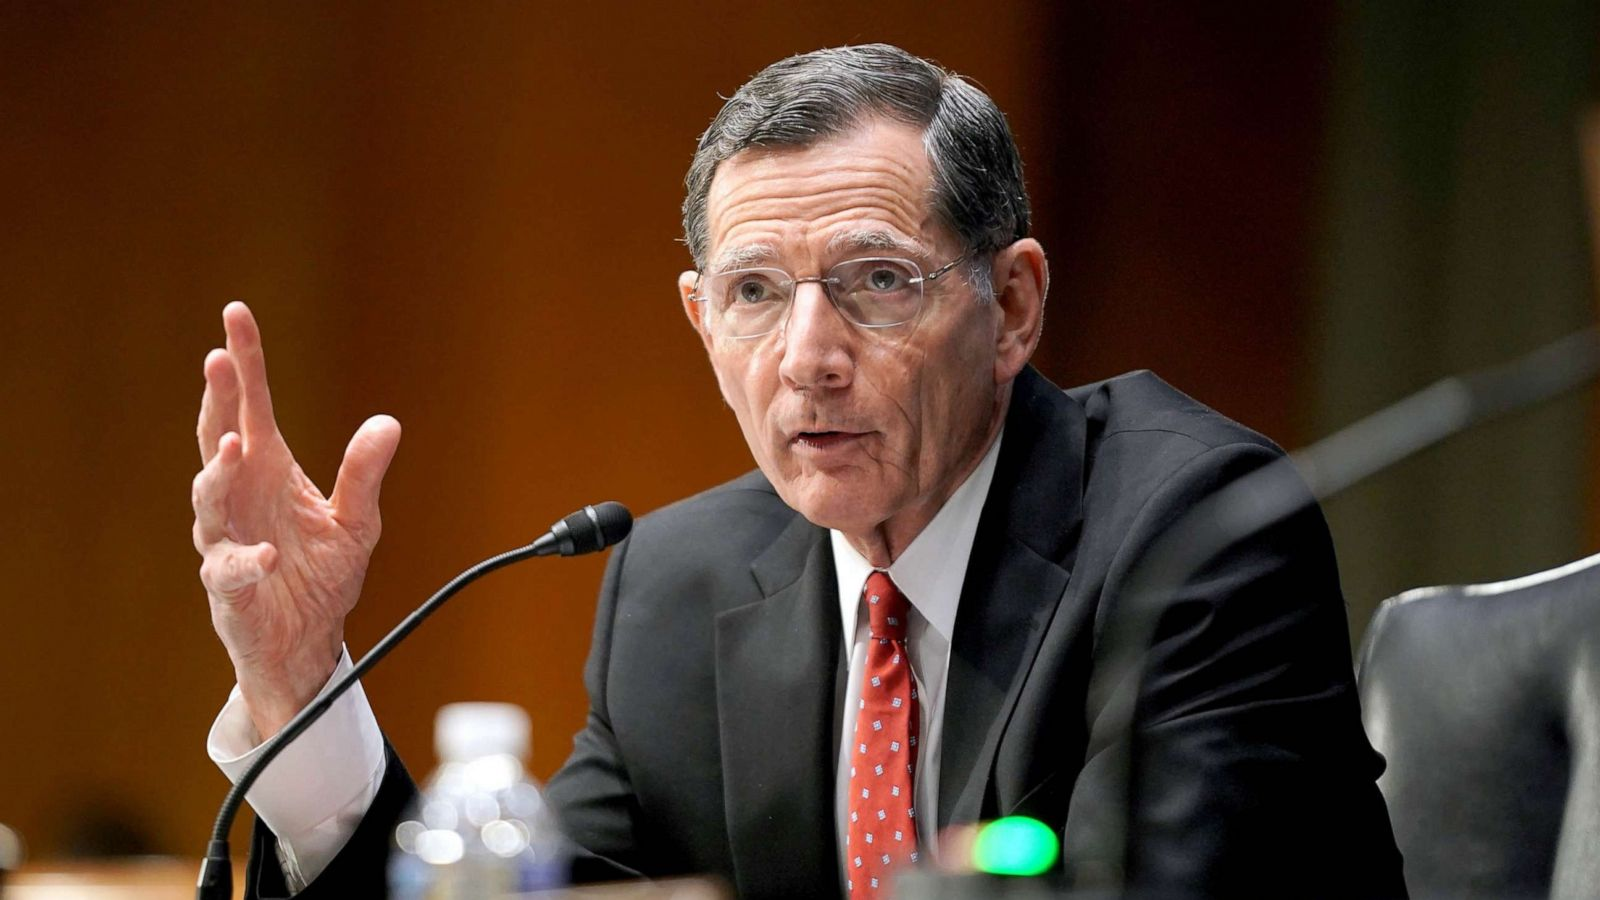 Biden spending on things we don't necessarily need, can't afford: Sen. John  Barrasso - ABC News